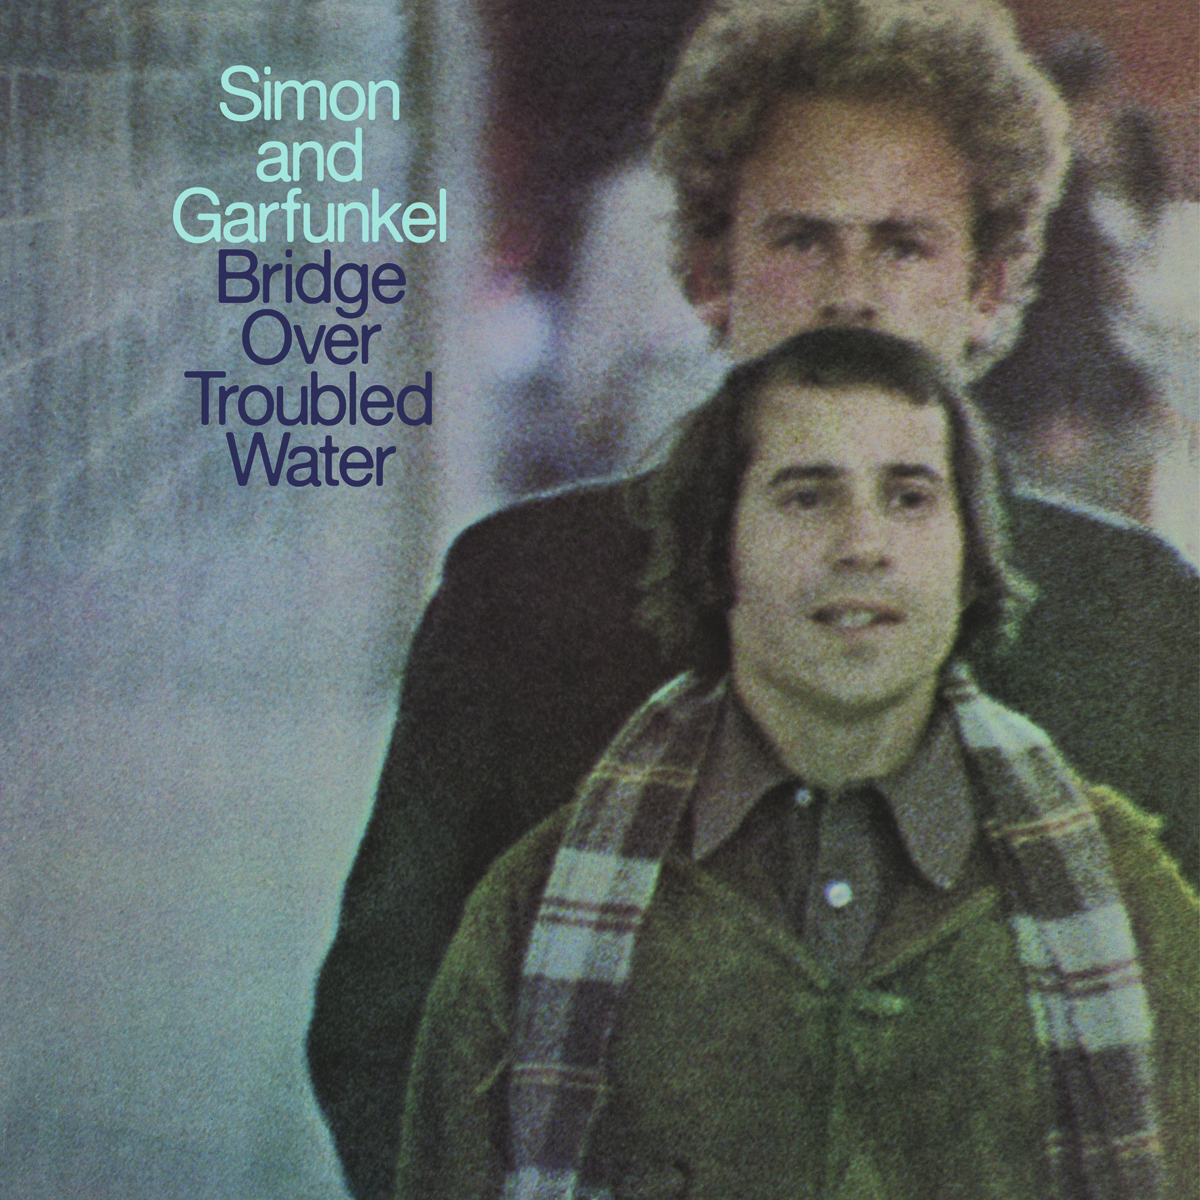 Simon & Garfunkel - Simon & Garfunkel Bridge Over Troubled Water LP